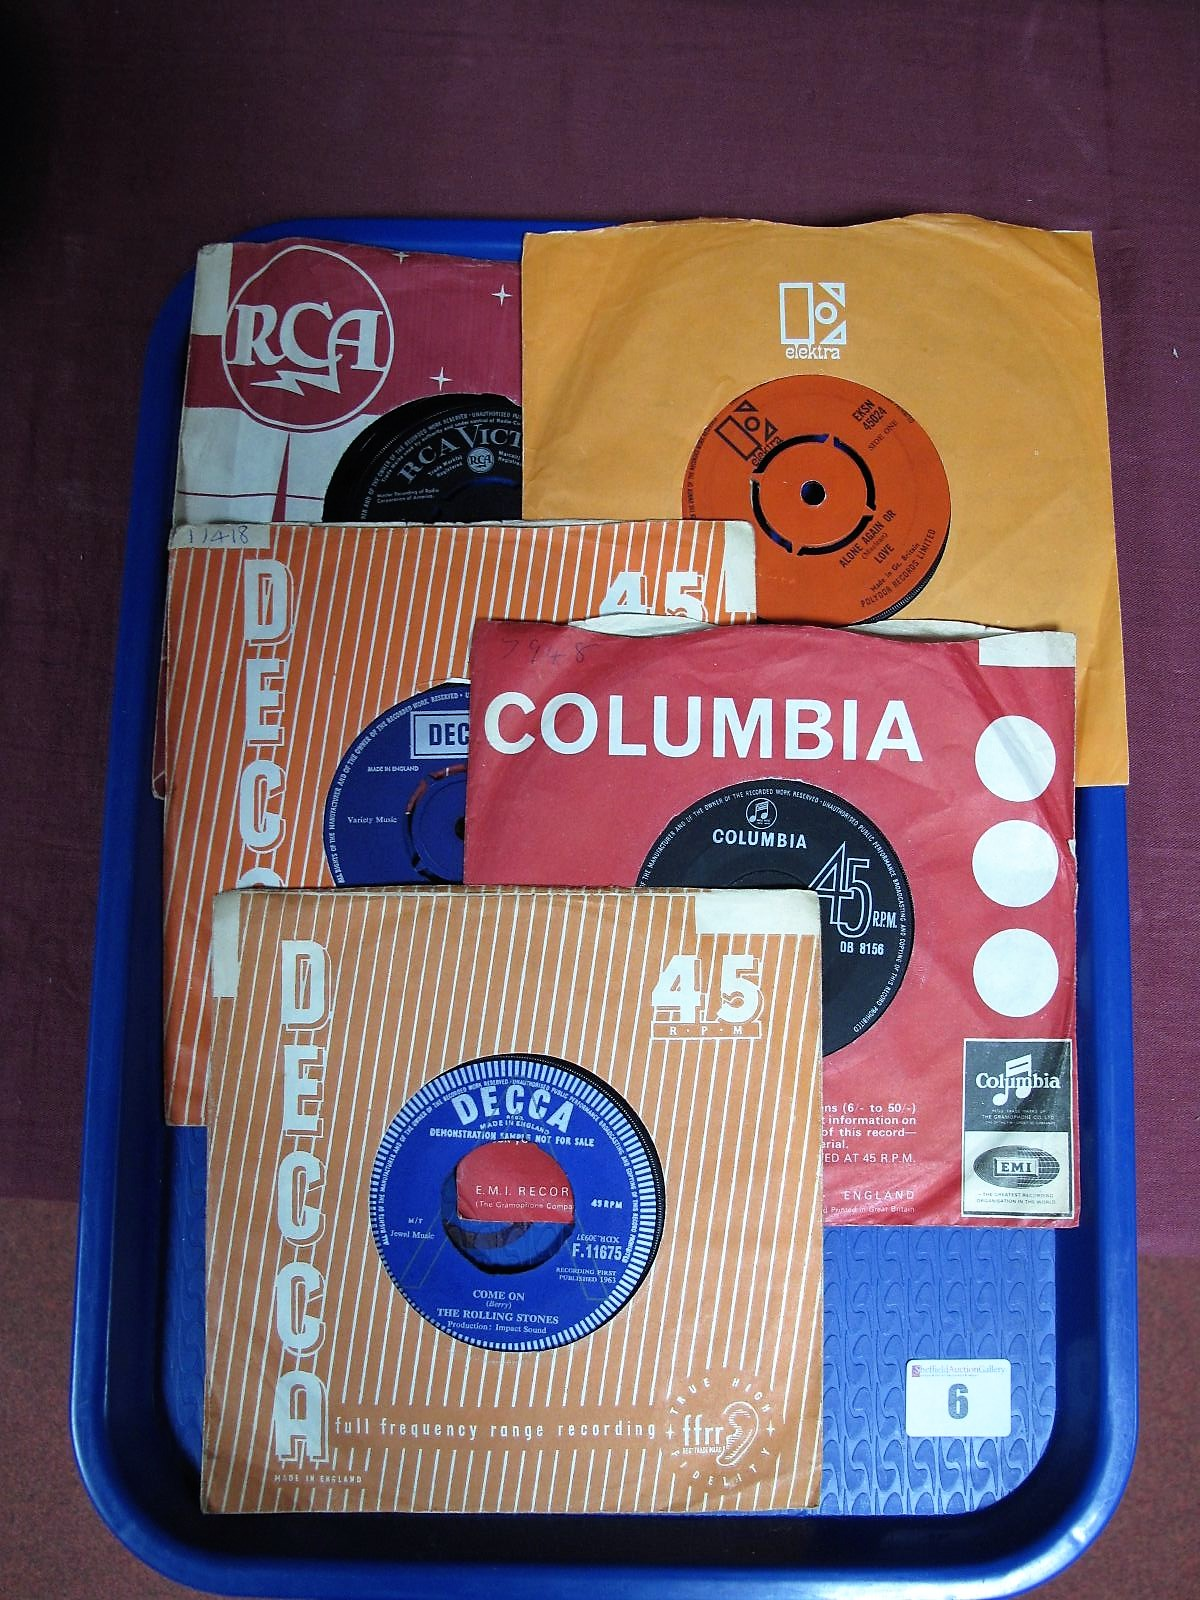 Lot 6 - Rolling Stones 'Come On' b/w 'I Want To Be Loved', Decca F.11675, rare copy to find and this one